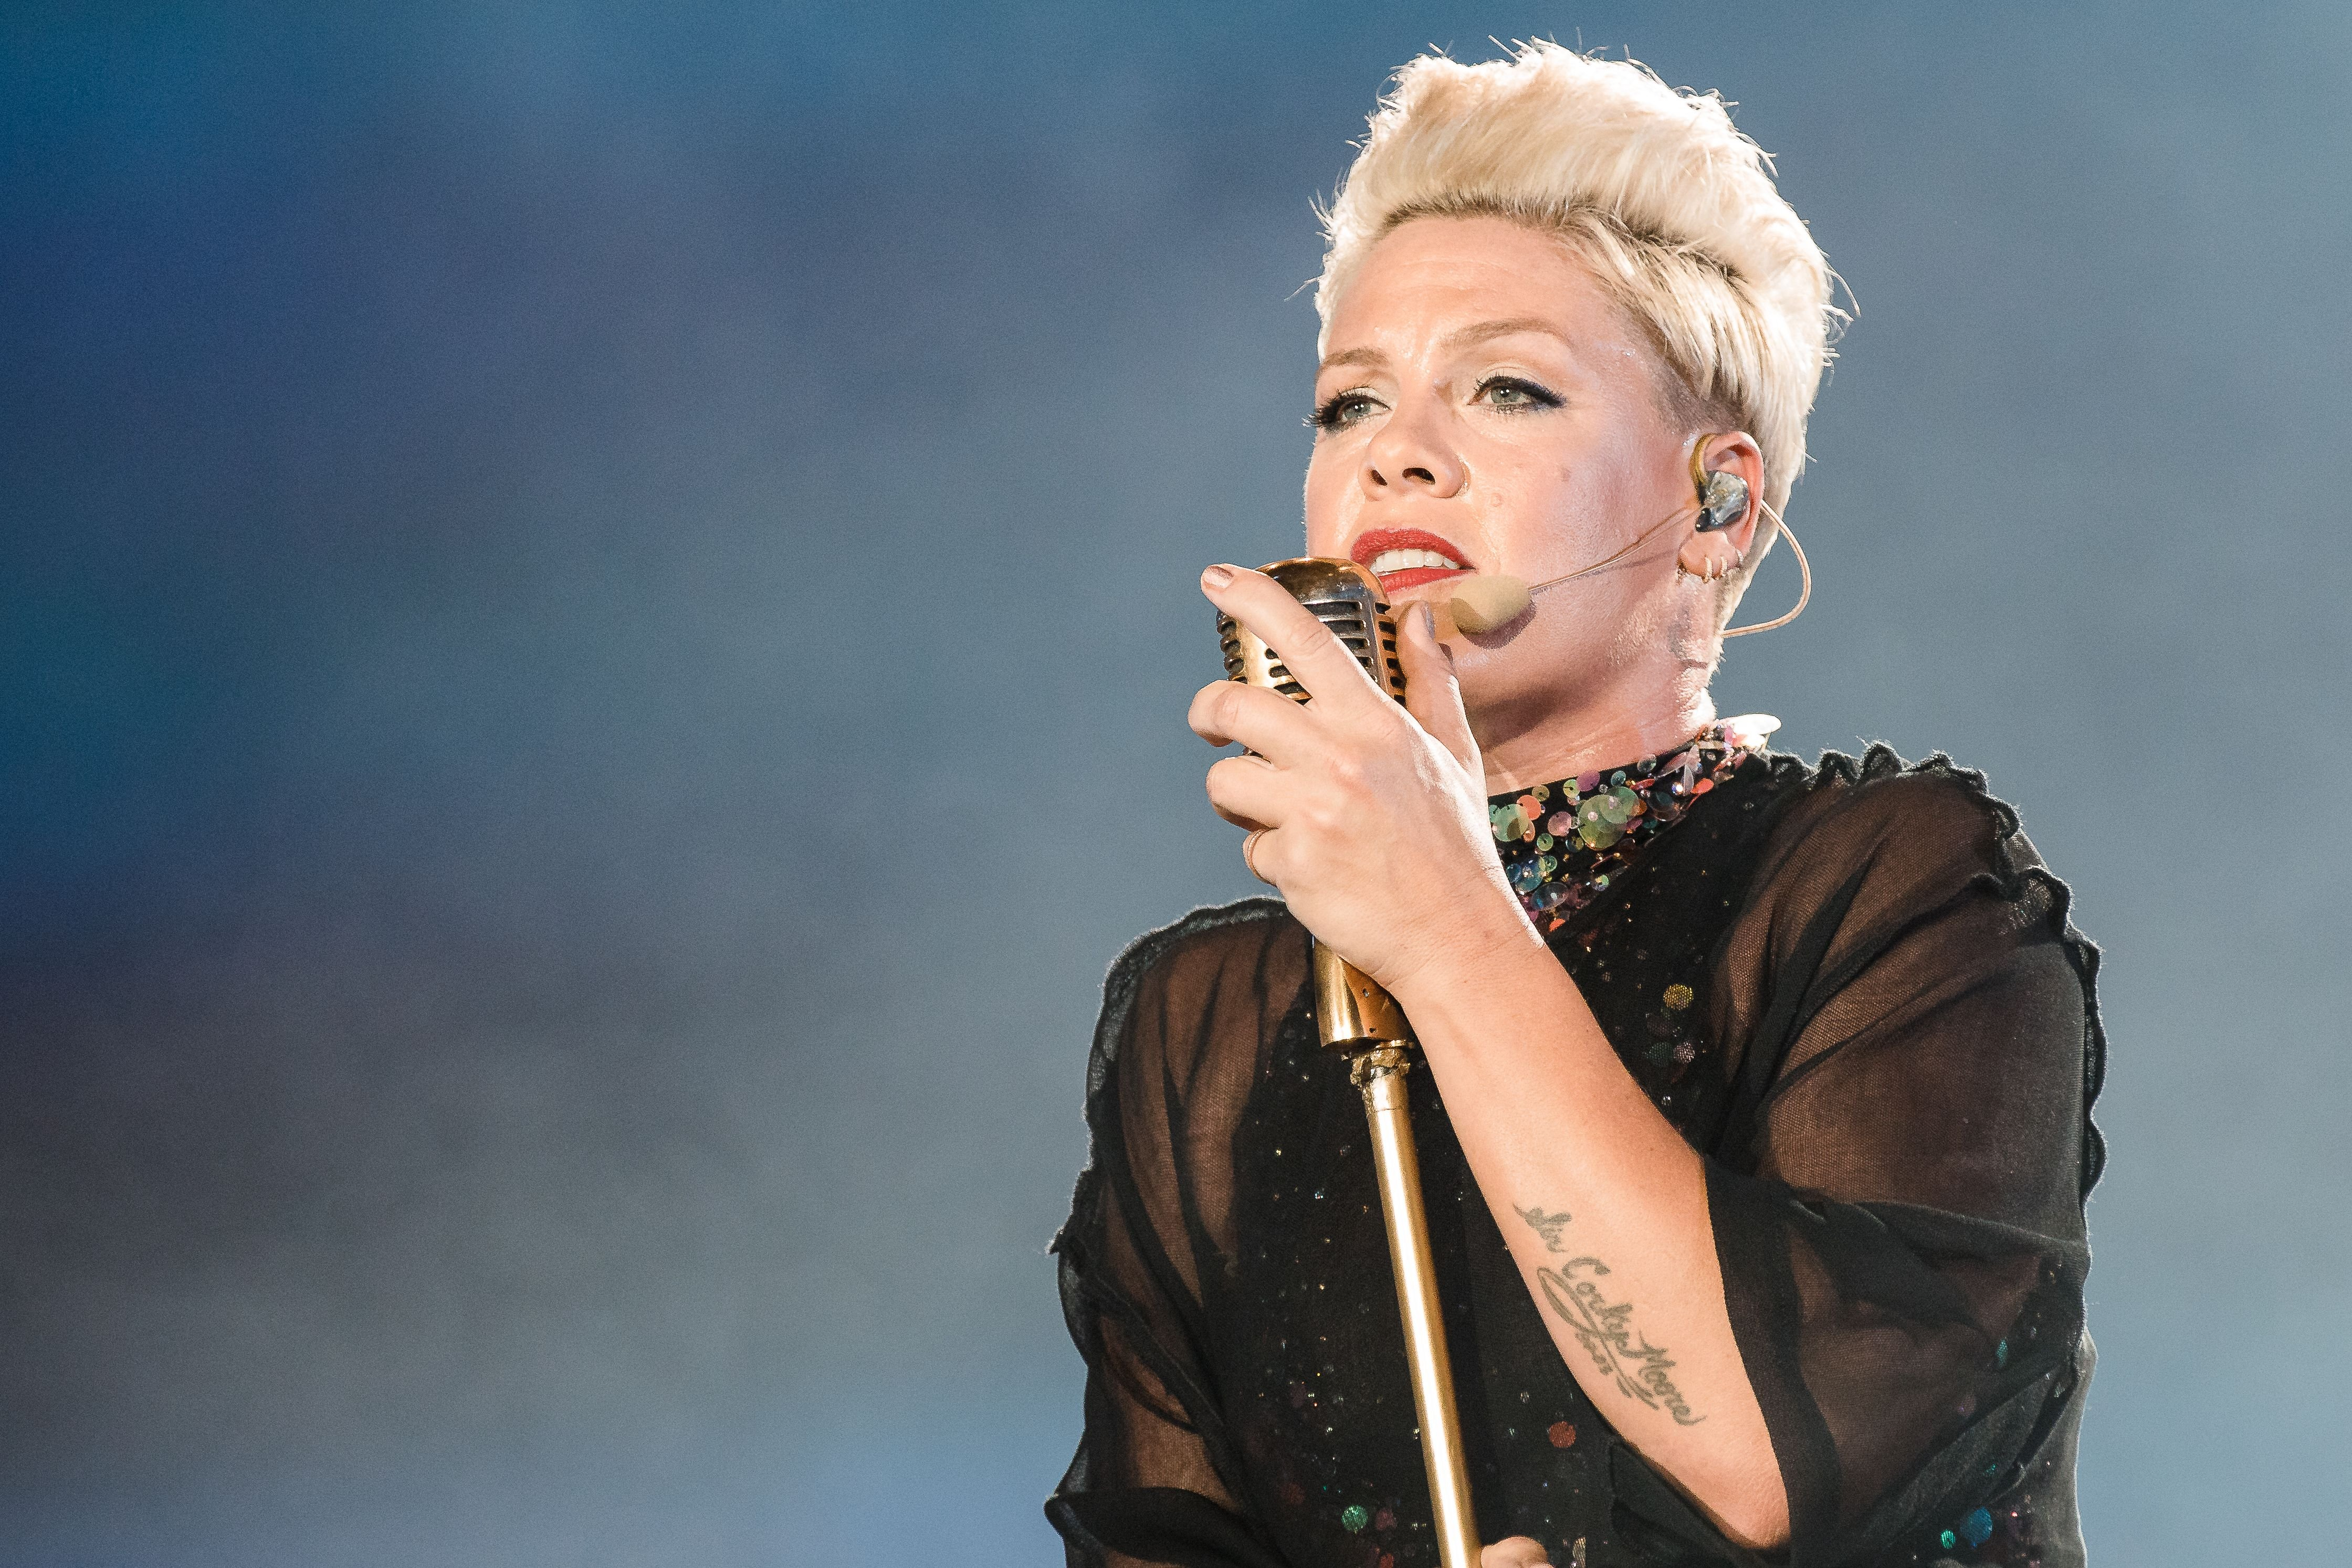 P!nk performed at day 6 of Rock In Rio Music Festival at Cidade do Rock on October 5, 2019 | Photo: Getty Images